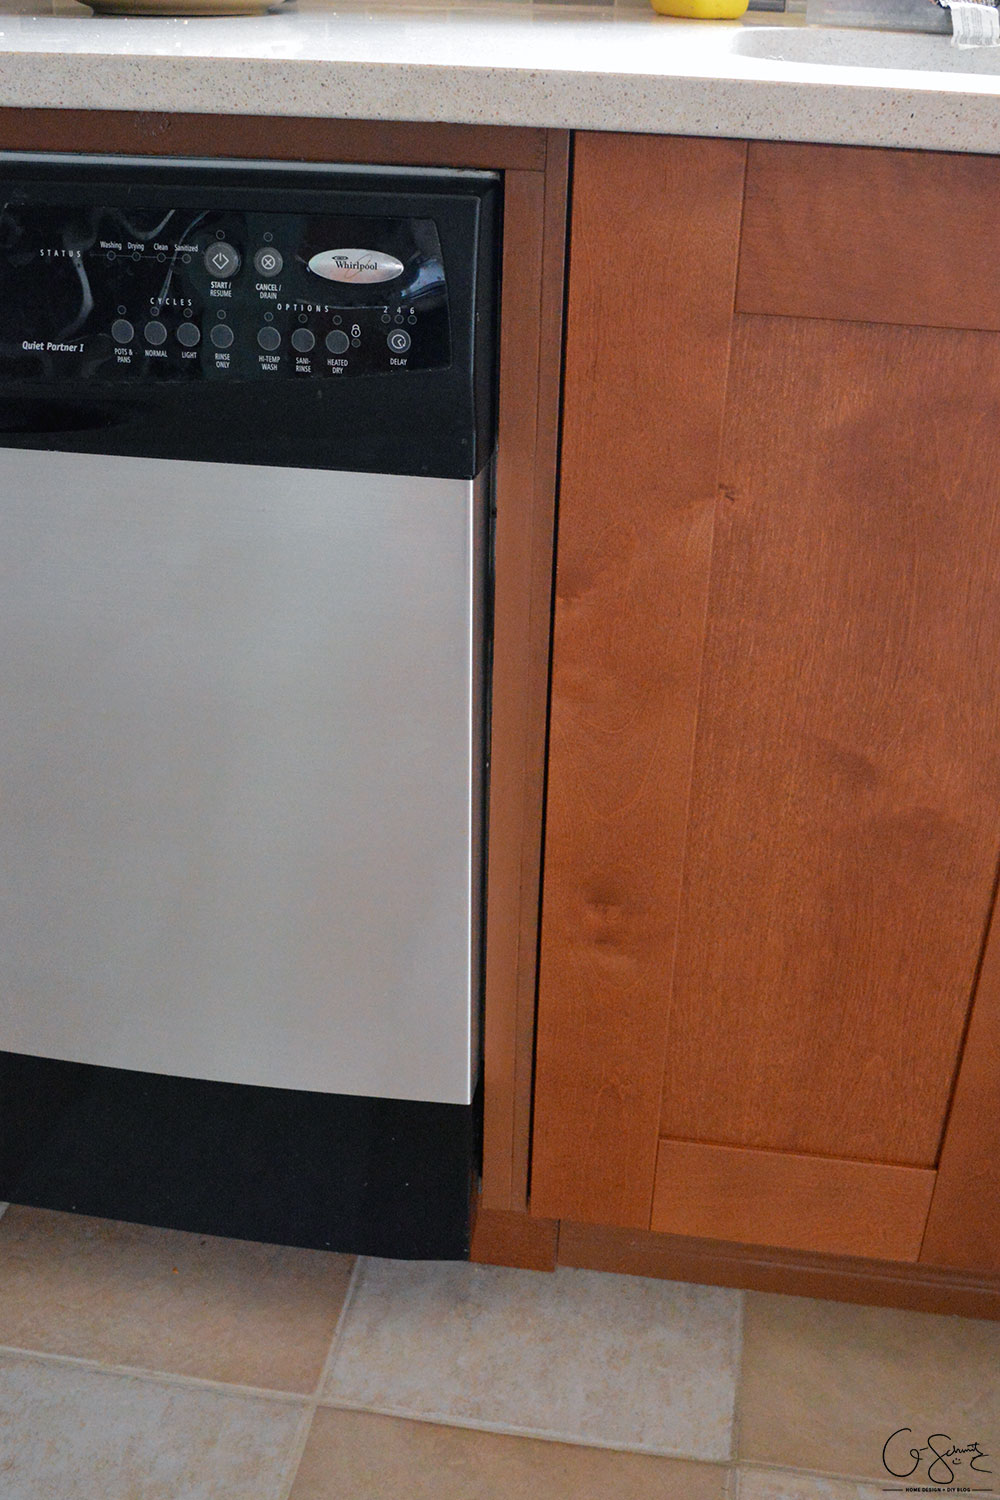 Are you planning on doing a DIY kitchen renovation? Find out when and why we decided to hire a pro to help take our Ikea kitchen to the next level!